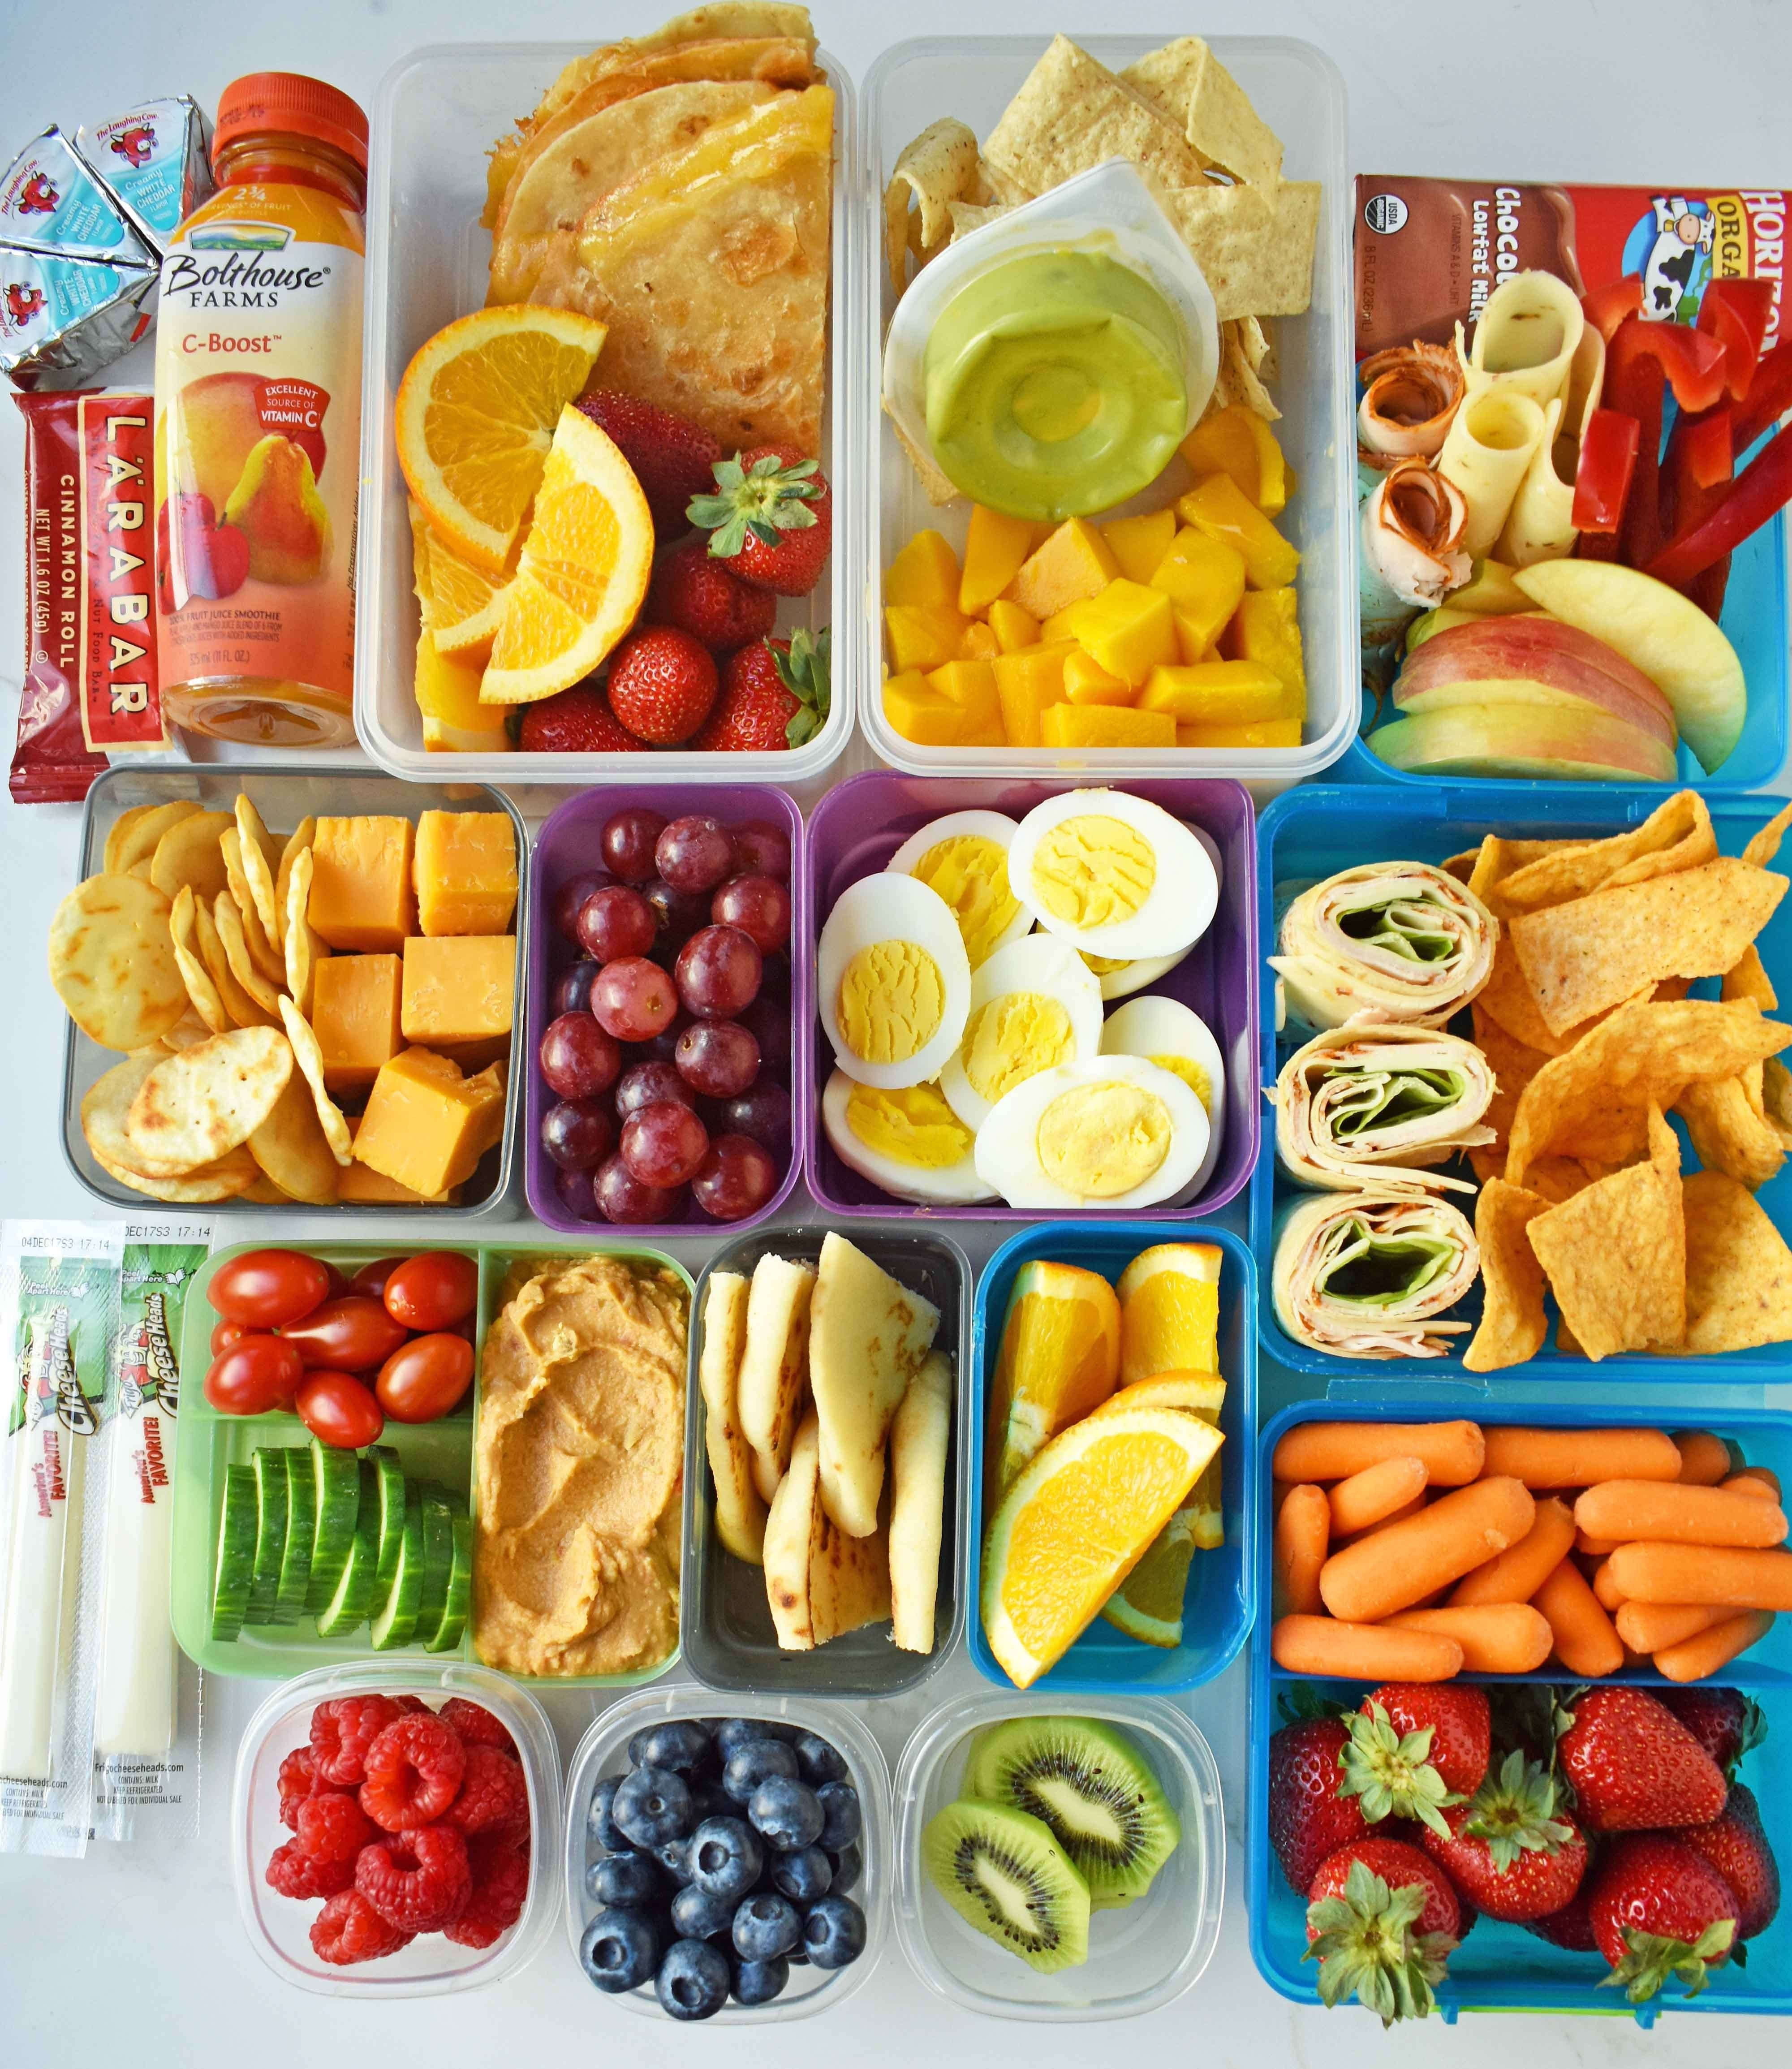 10 Most Popular Healthy Food Ideas For Toddlers back to school kids lunch ideas modern honey 24 2020